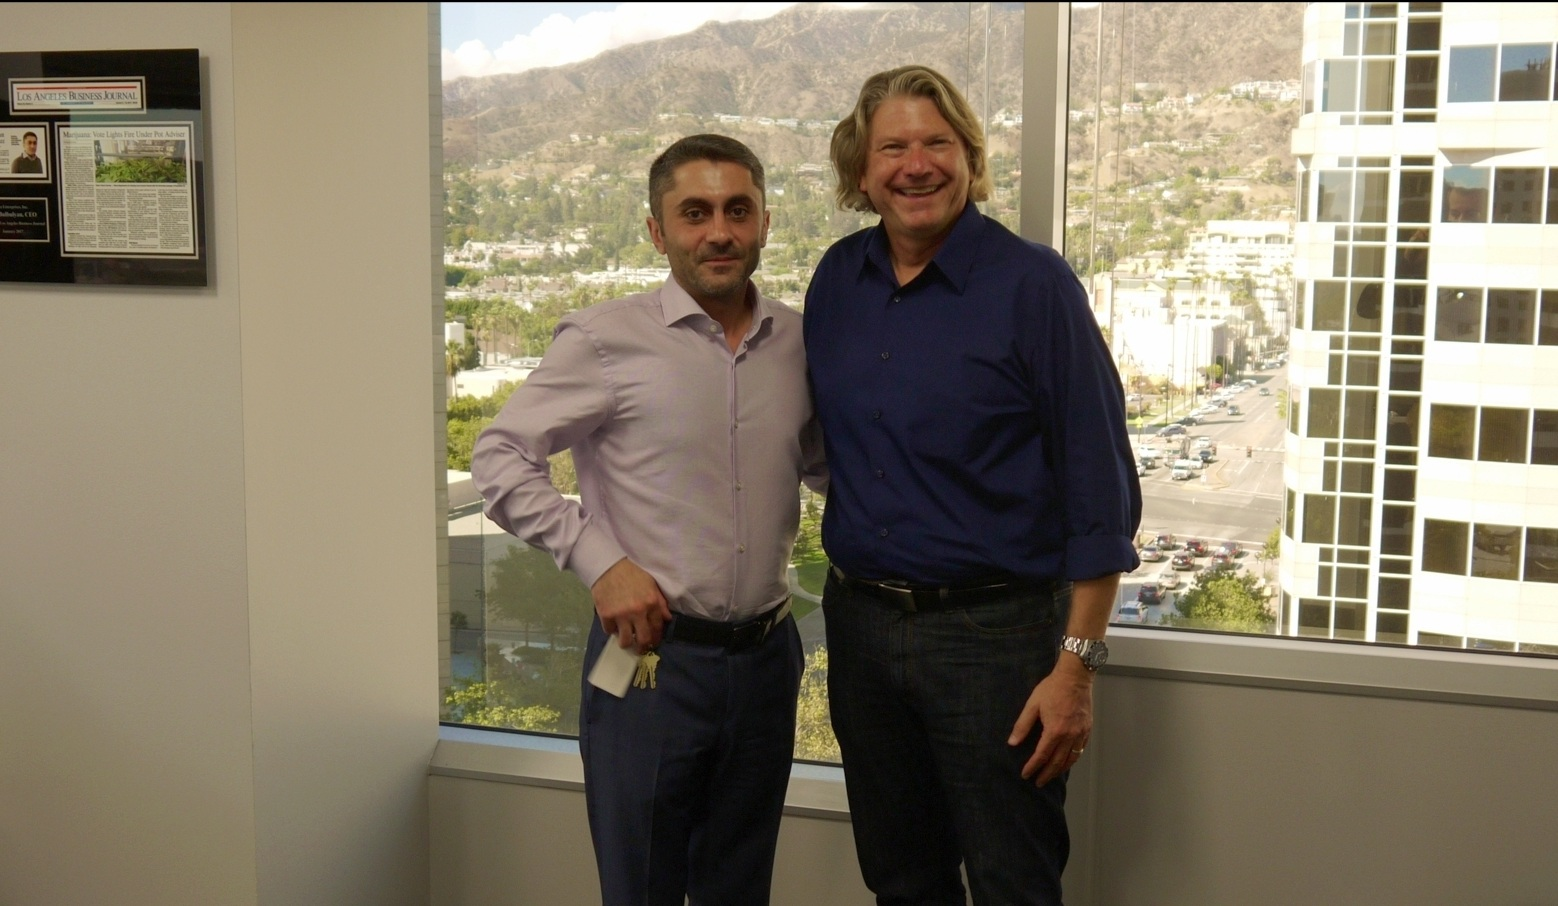 Episode 9 - We've Got AnswersMy guest today is Avis Bulbulyan, the CEO of SIVA Enterprises, a full-service cannabis business development and solutions firm that provides turn-key management, venture opportunities, product and brand development, and licensing to entrepreneurs across the US. He is also the President of the Los Angeles Cannabis Task Force, an appointed member of California's state advisory committee advising the three bureaus on cannabis regulations, and was the Education Chair for Cannabis Legal Accounting & Business. The bottom line is that if you want answers about the cannabis business, Avis is your guy.Visit Apple Podcasts and subscribe or find it on Google Play or Stitcher. Or, you may download it here.Visit SIVA Enterprises and Get More Answers.To learn more about cannabis for adults, please visit our sponsor, Three Wells — Be well. Live well. Do well.